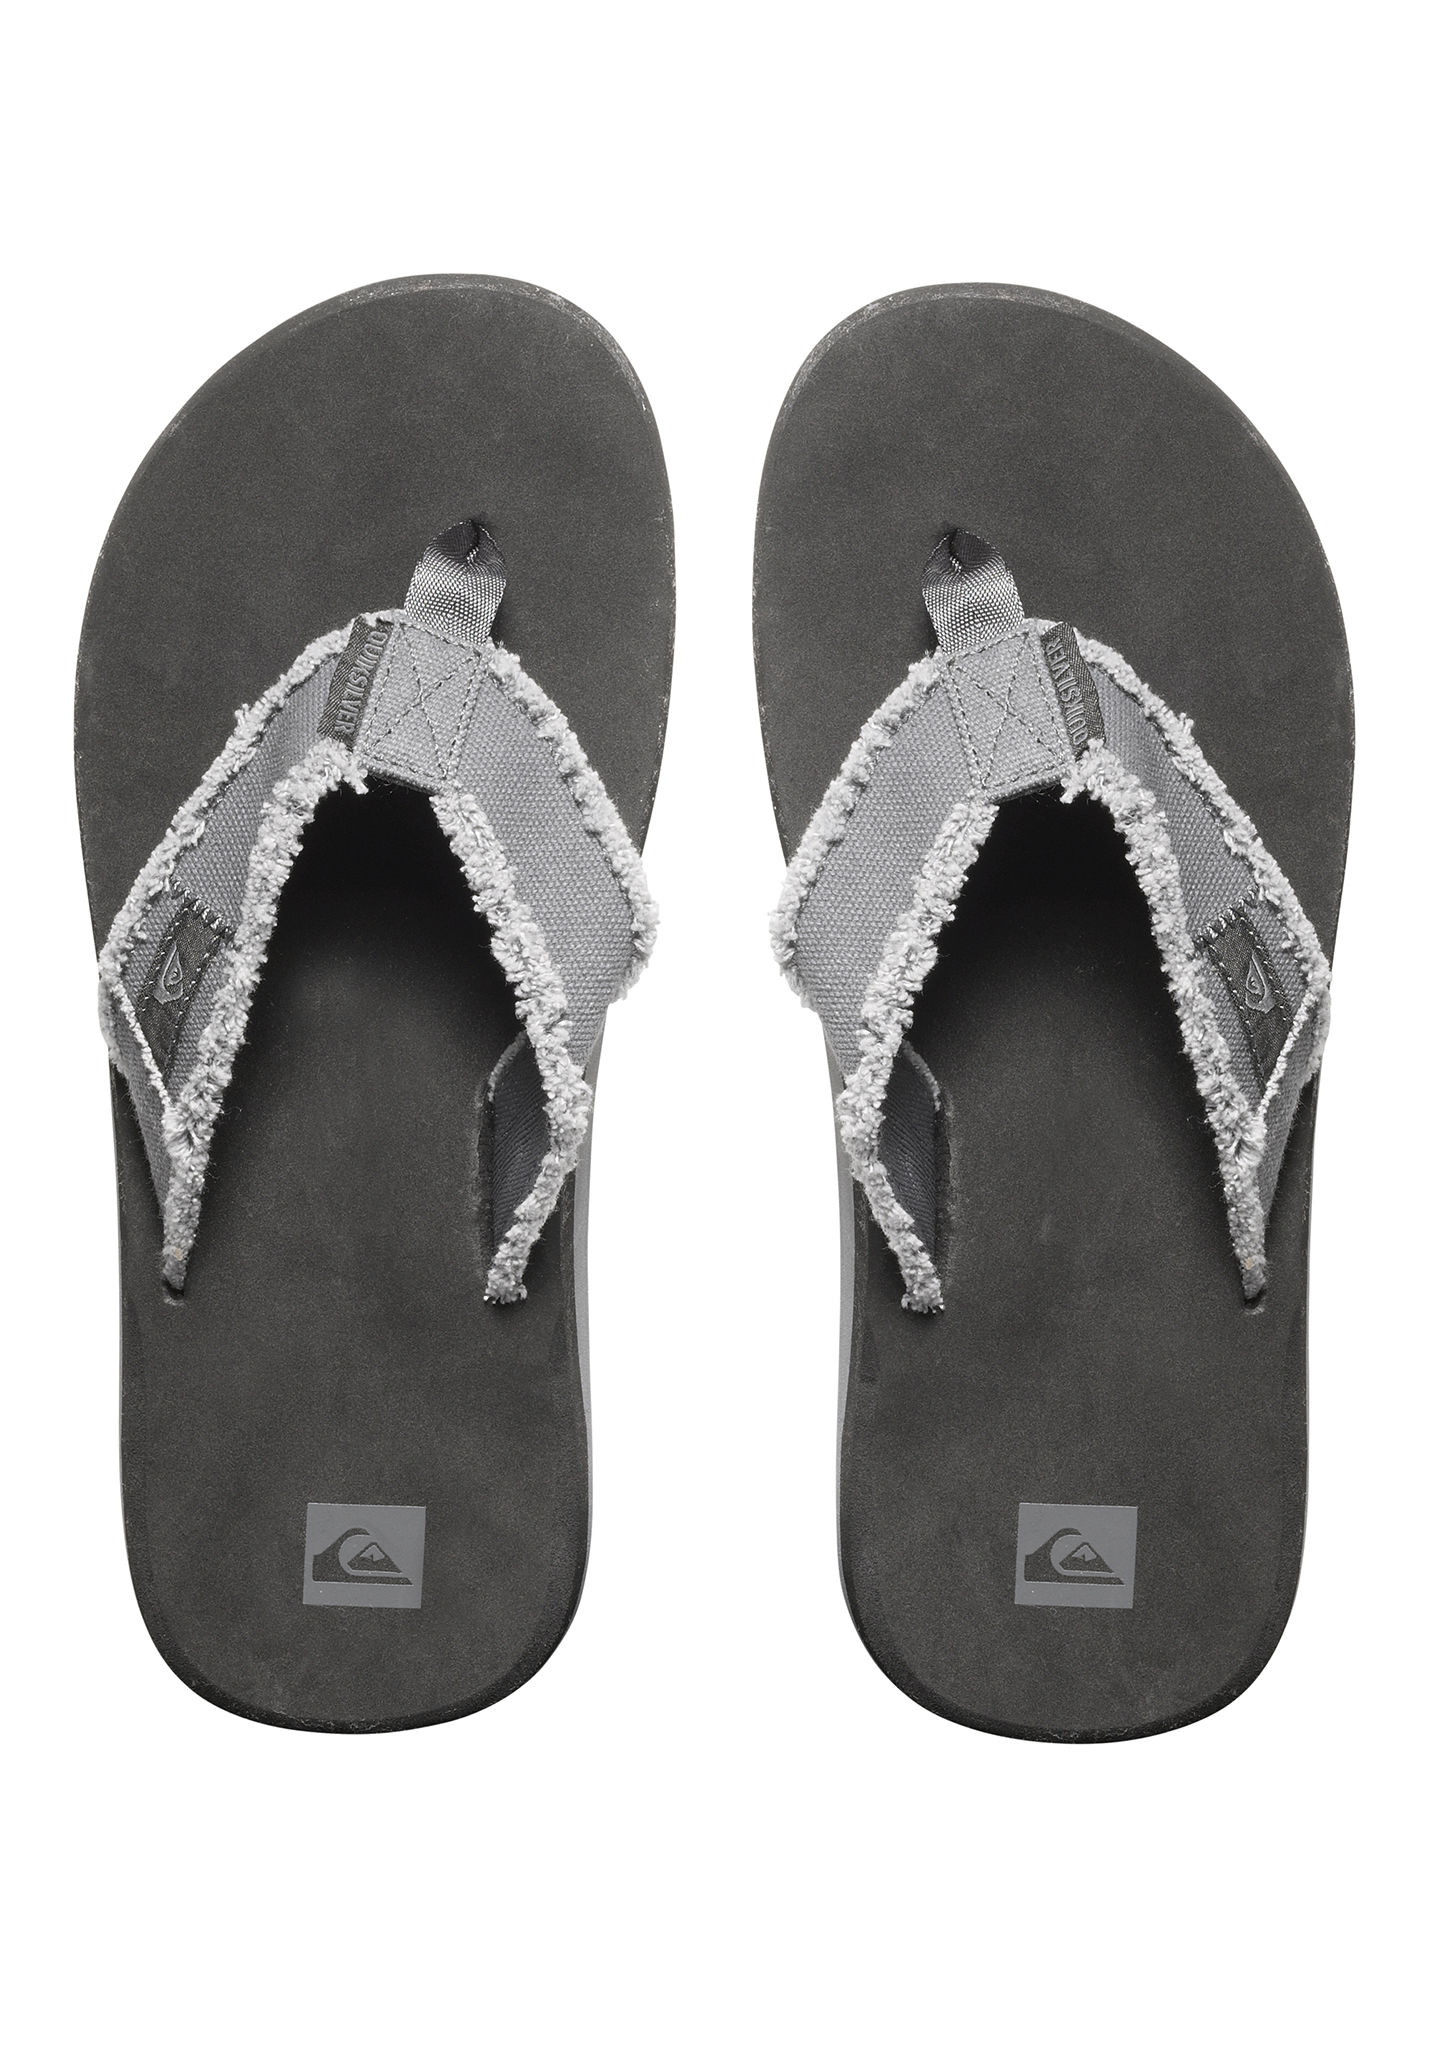 00e9e3fe6dc8 Quiksilver Monkey Abyss - Sandals for Men - Grey - Planet Sports